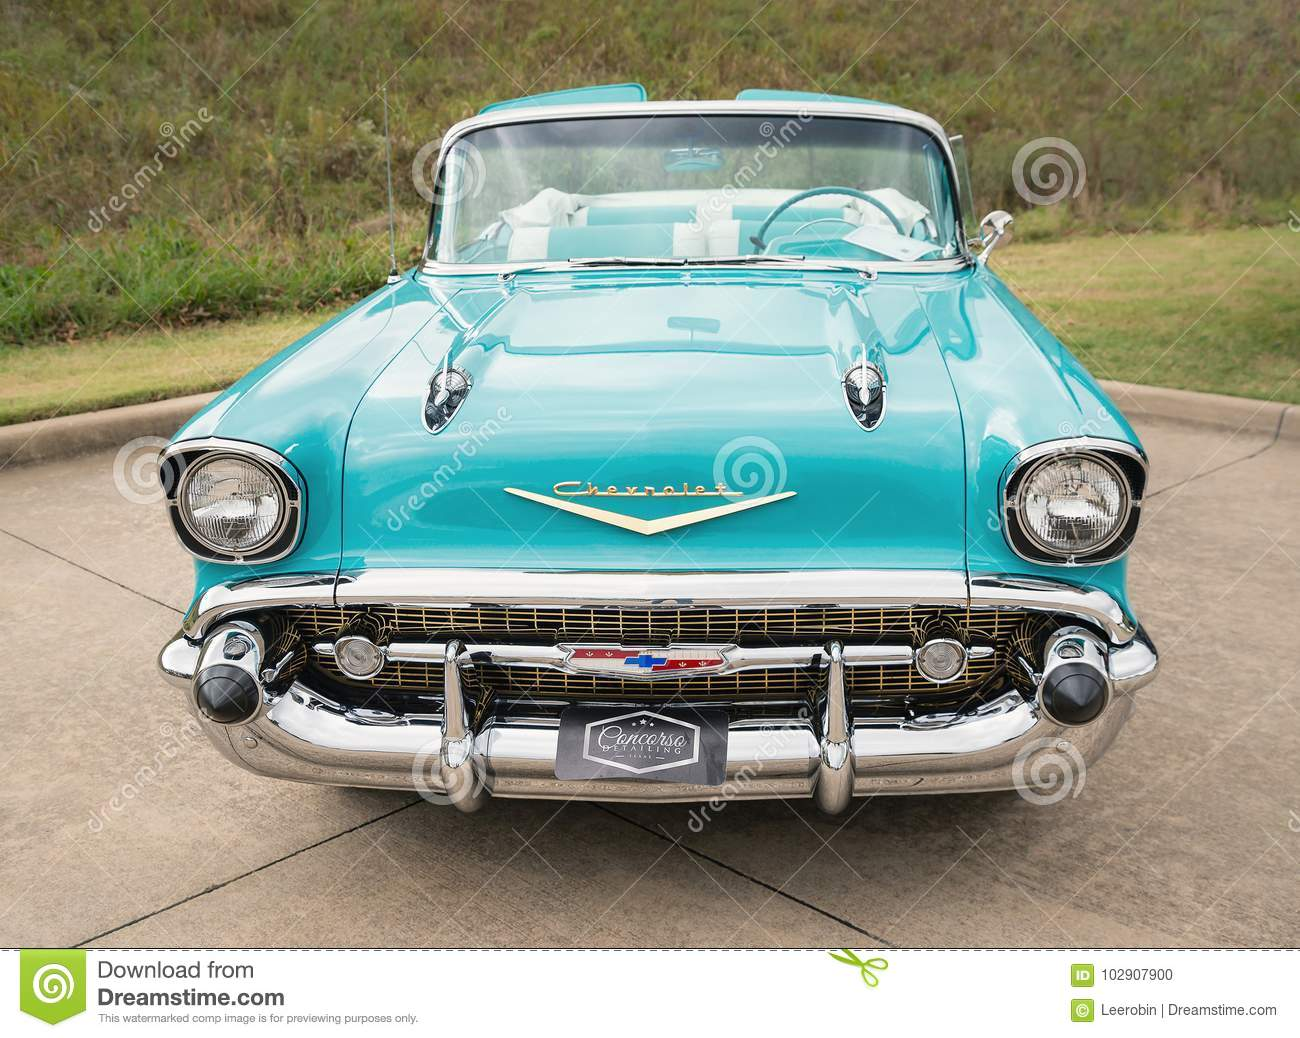 1957 Chevrolet Bel Air Convertible Classic Car Editorial Image Chevy